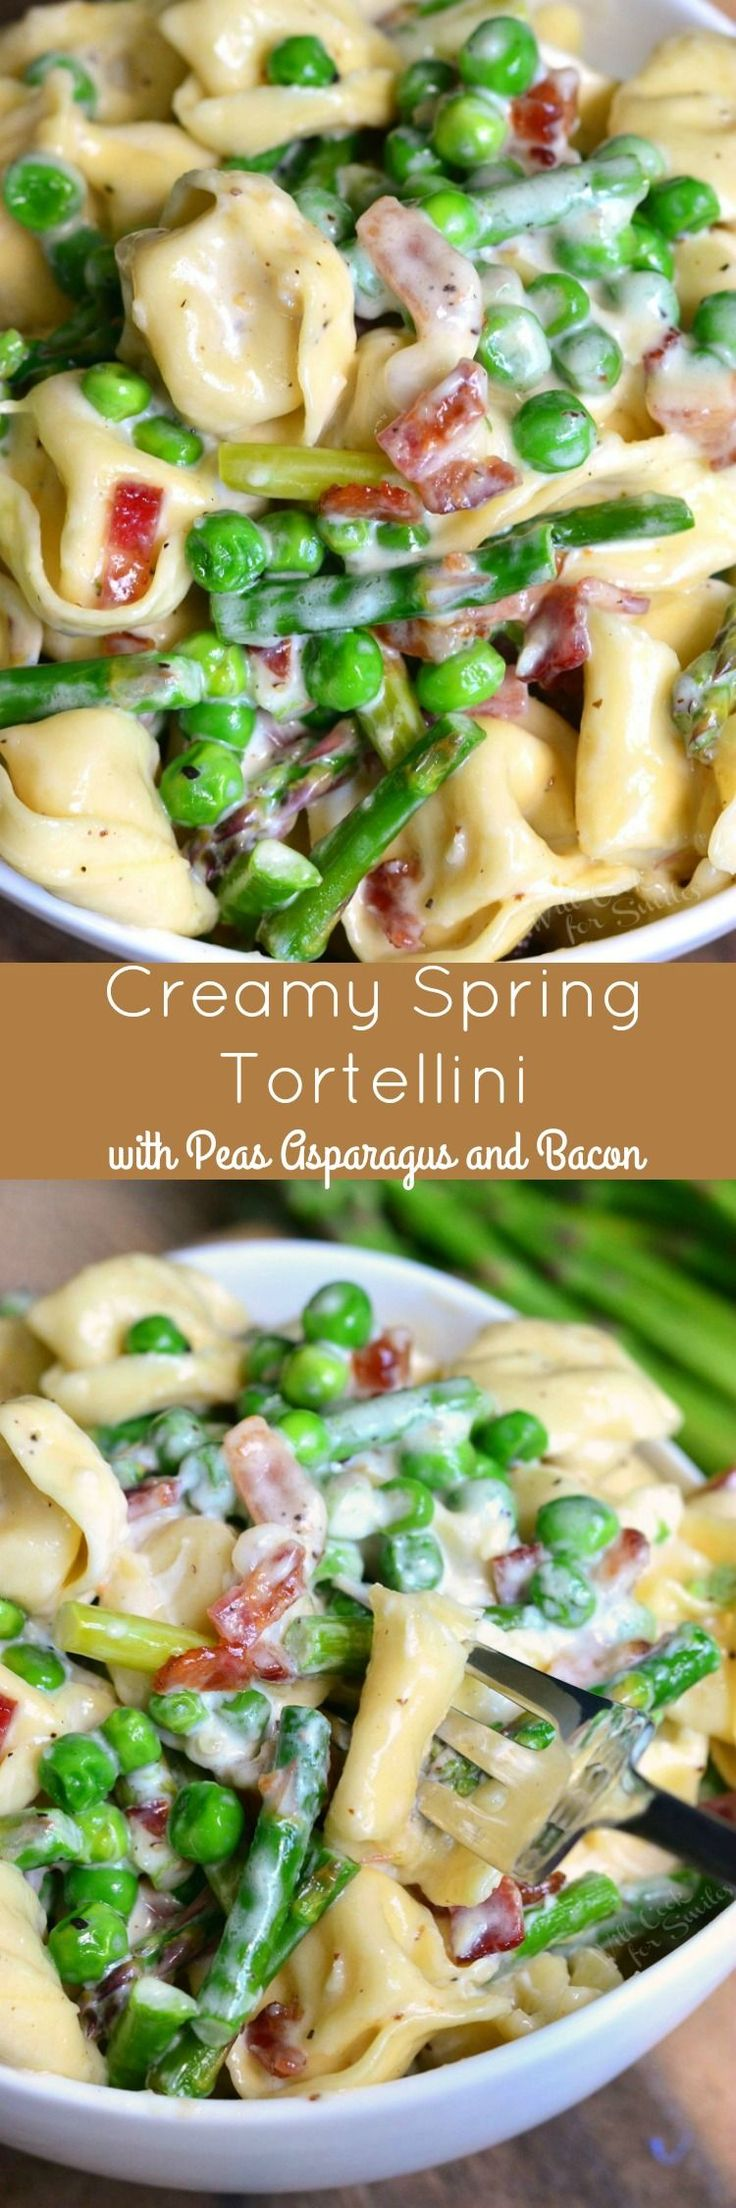 Creamy Spring Tortellini with Peas Asparagus and Bacon. Delicious creamy tortellini dish made comforting with Parmesan cream sauce and crispy bacon and its also loaded with peas and asparagus.